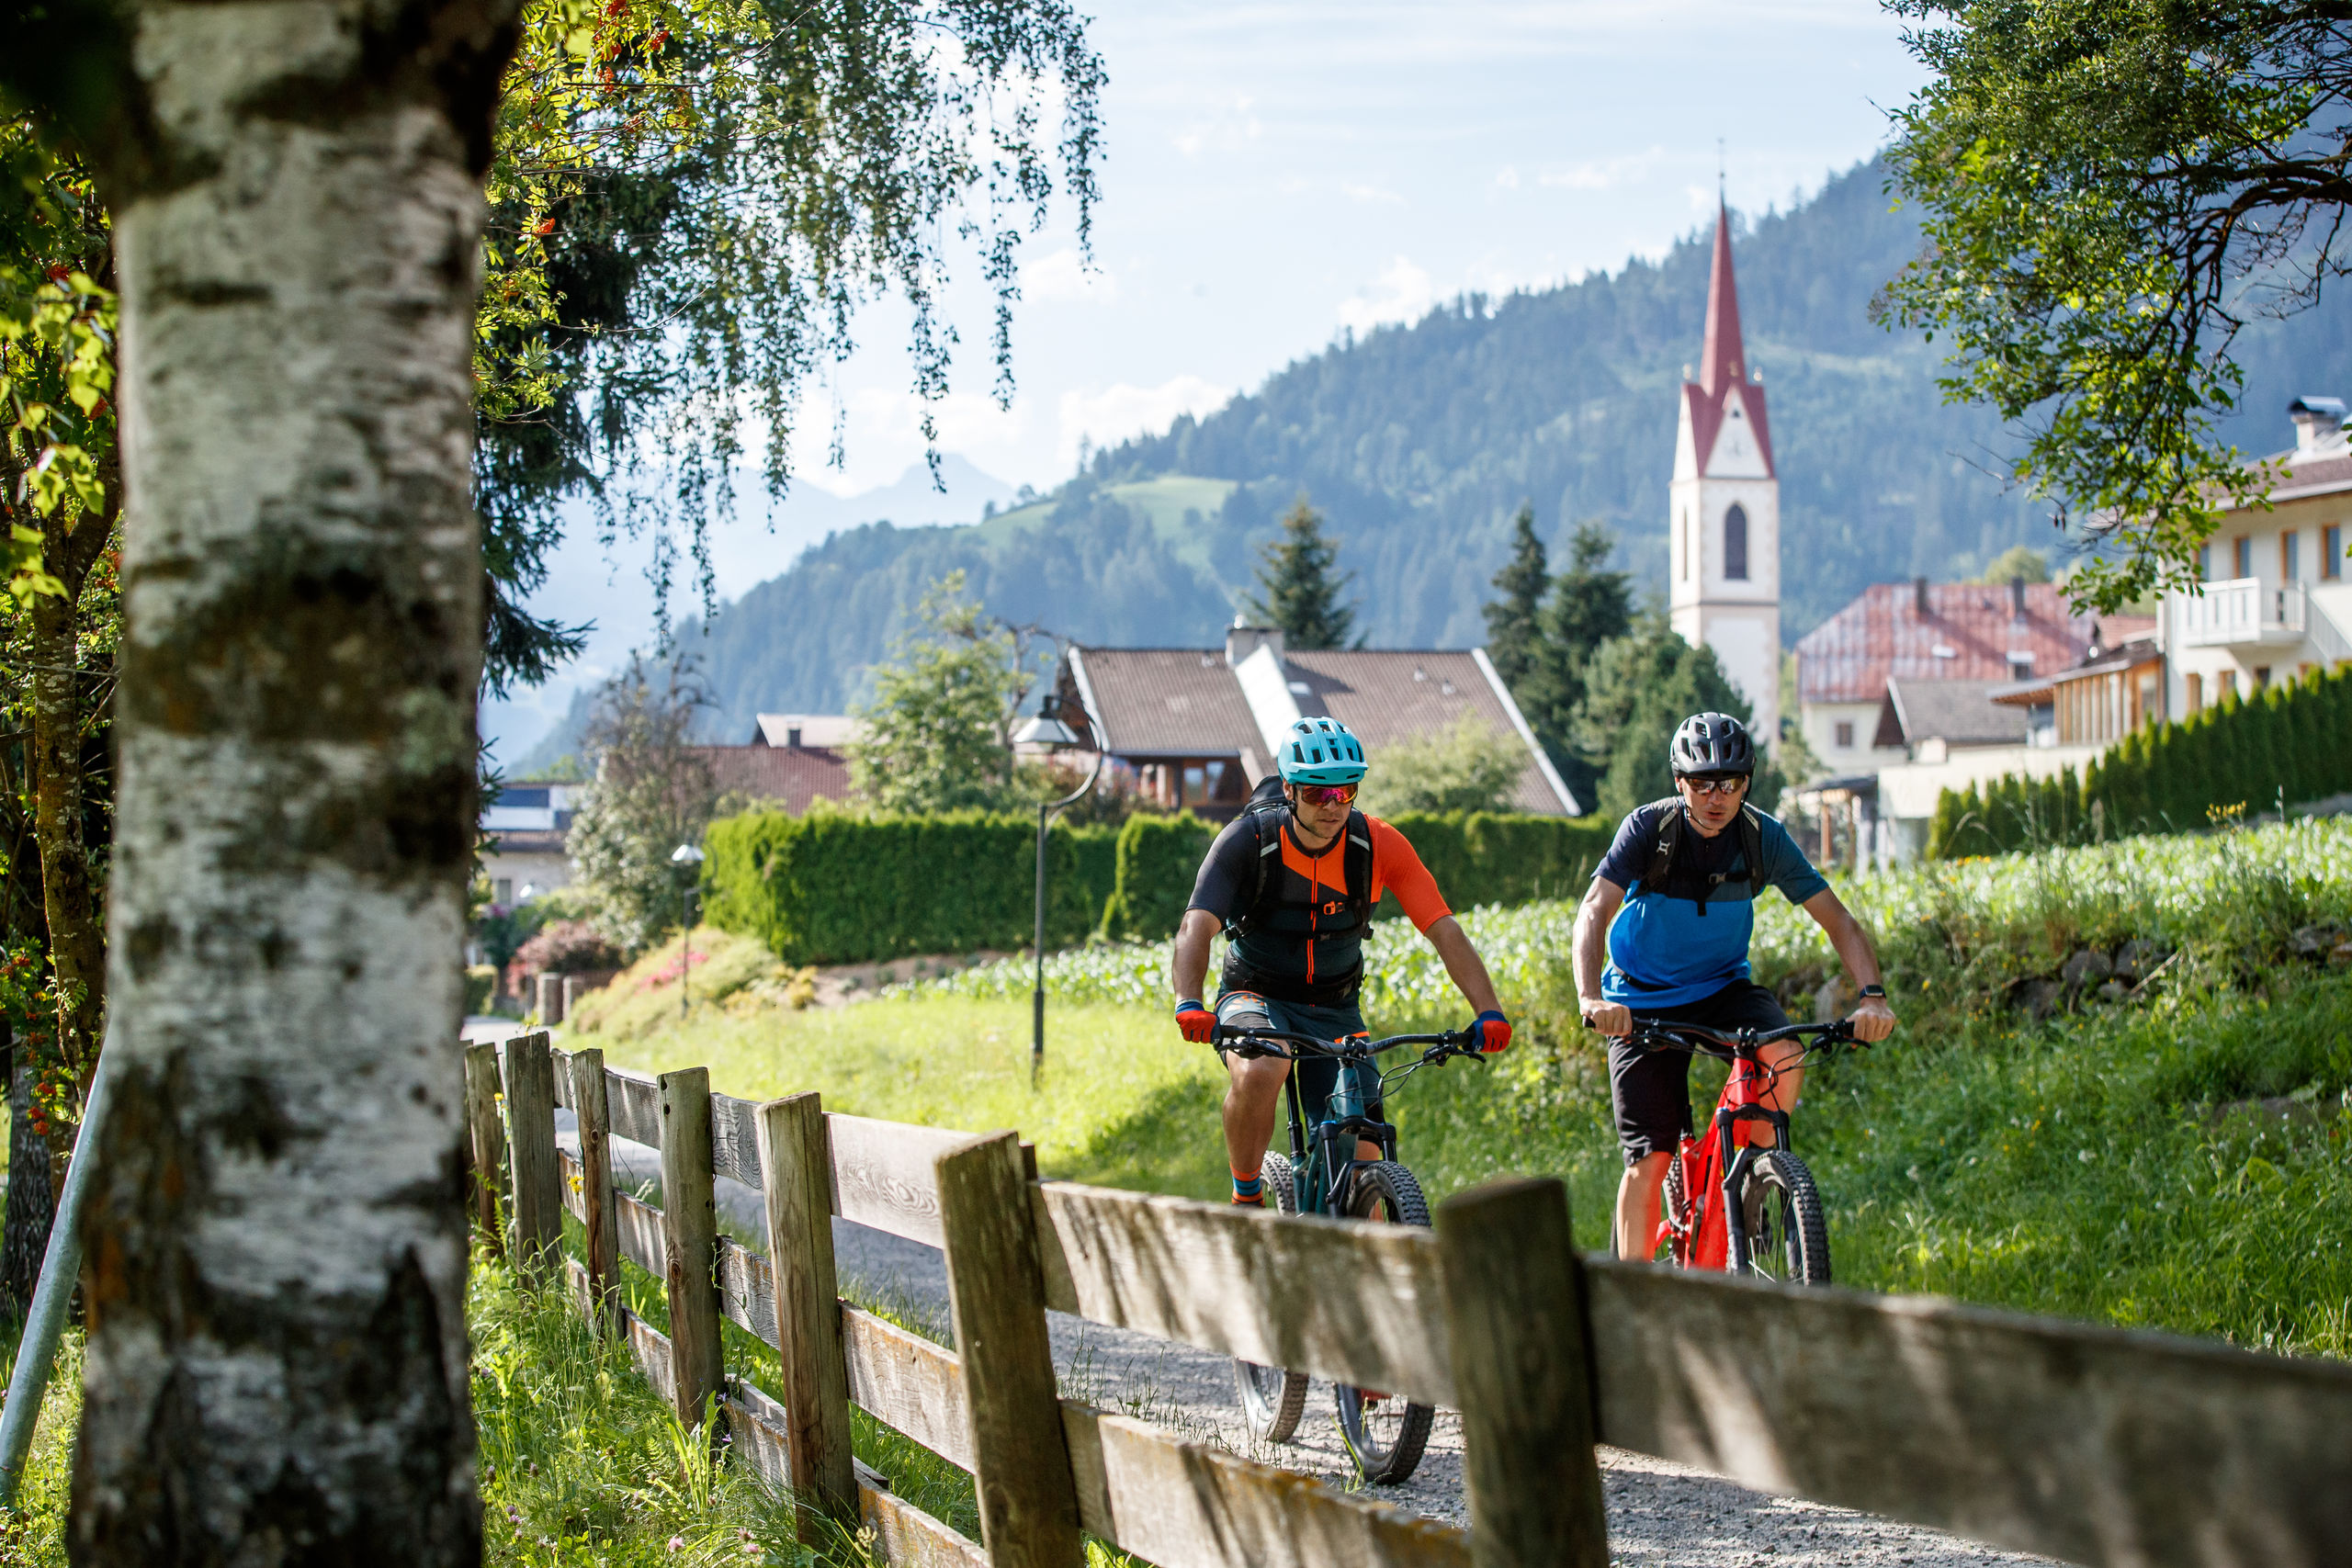 Explore the sunny city of Lienz in Tyrol by bike